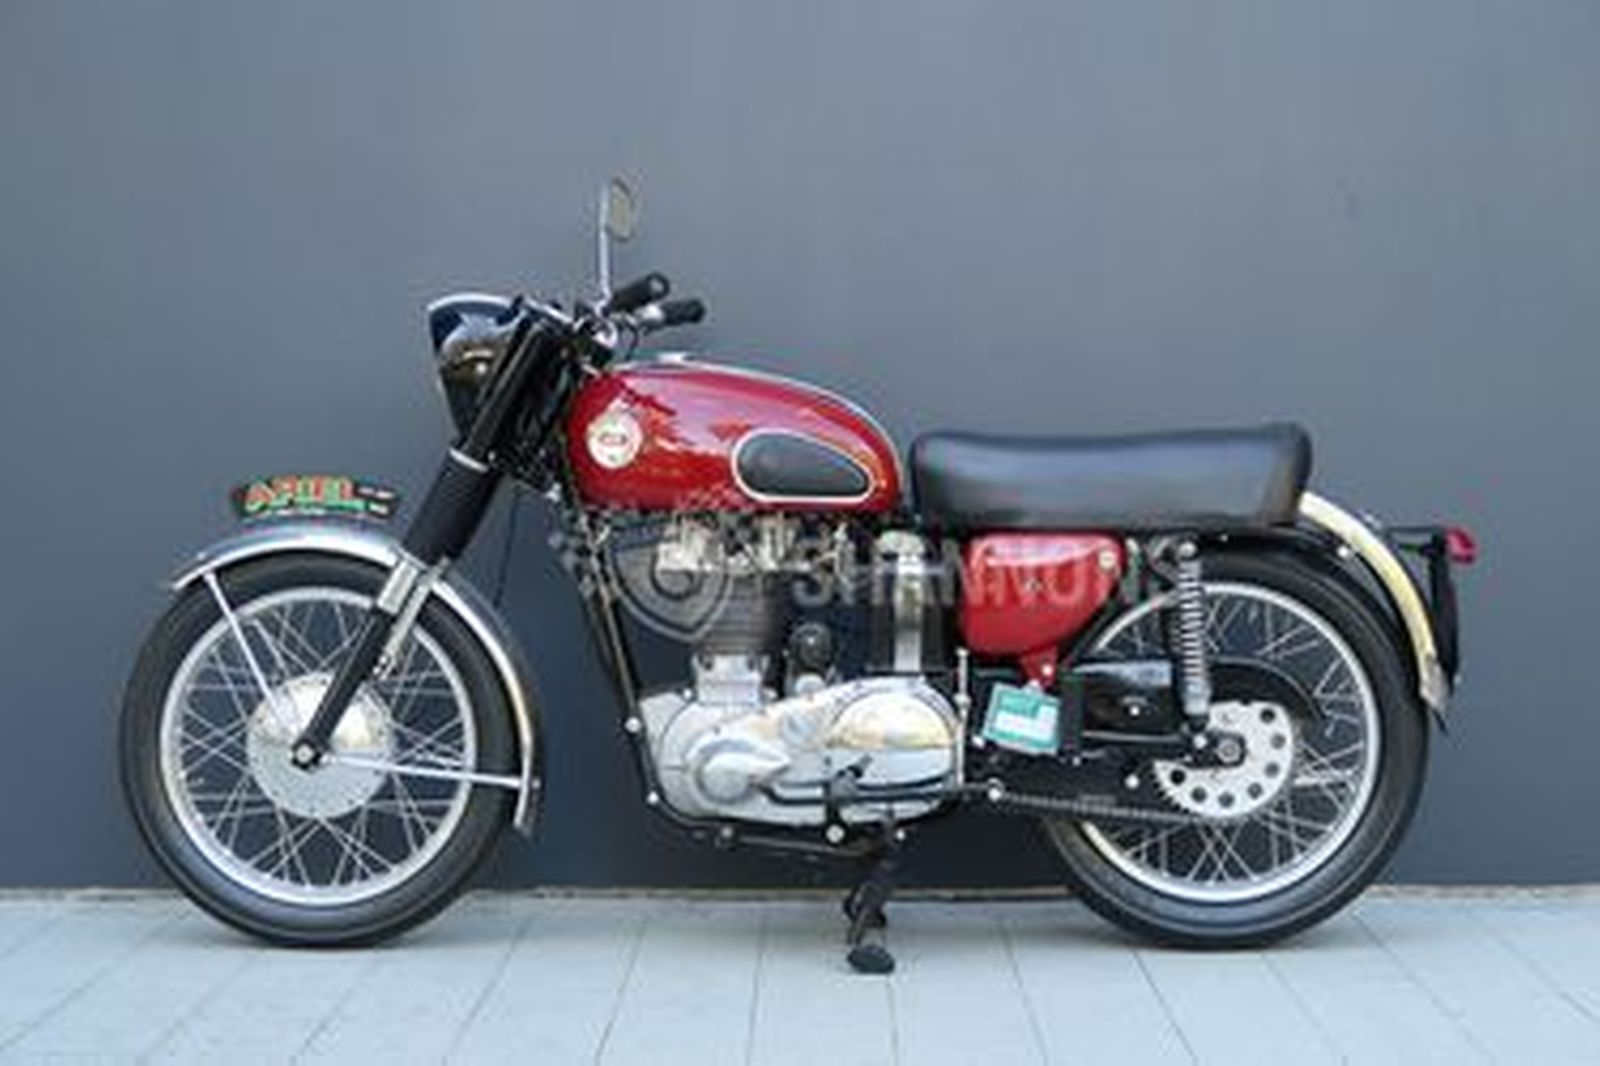 Ariel VH Red Hunter 500cc Motorcycle